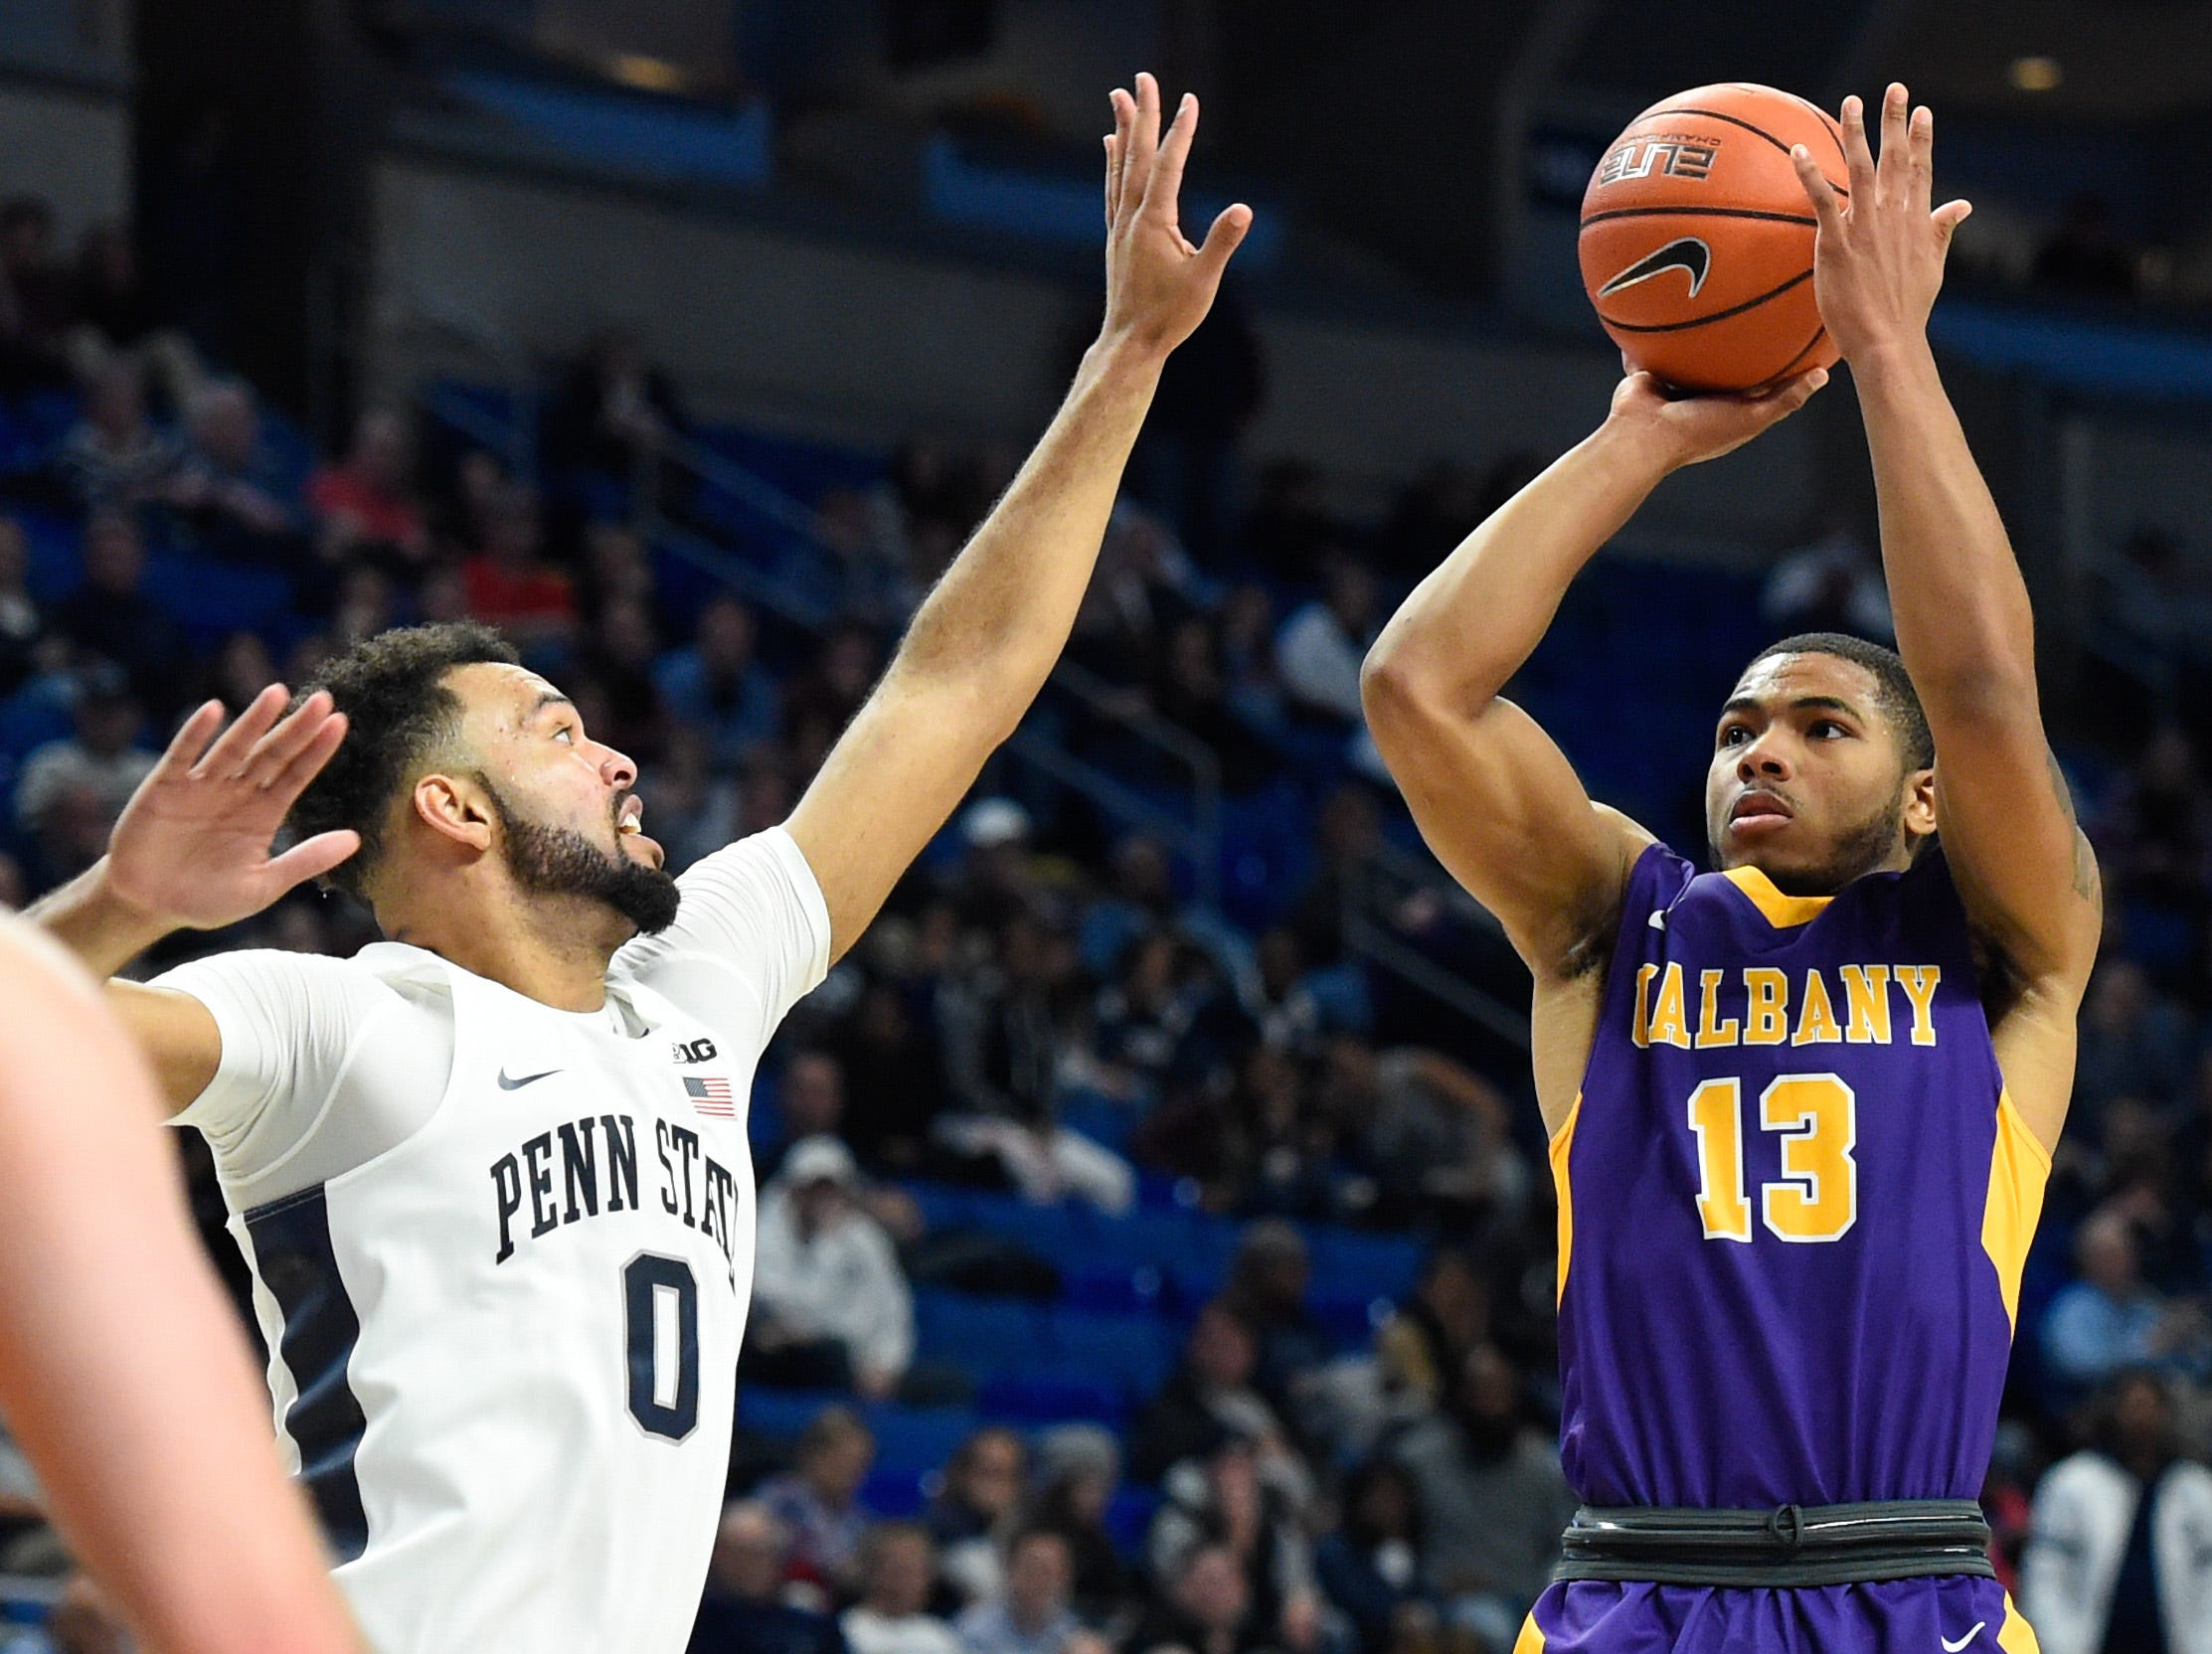 Nov 11, 2016; University Park, PA, USA; Albany Great Danes guard David Nichols (13) shoots the ball against the defense of Penn State Nittany Lions forward Payton Banks (0) during the second half at the Bryce Jordan Center. Albany defeated Penn State 87-81. Mandatory Credit: Rich Barnes-USA TODAY Sports